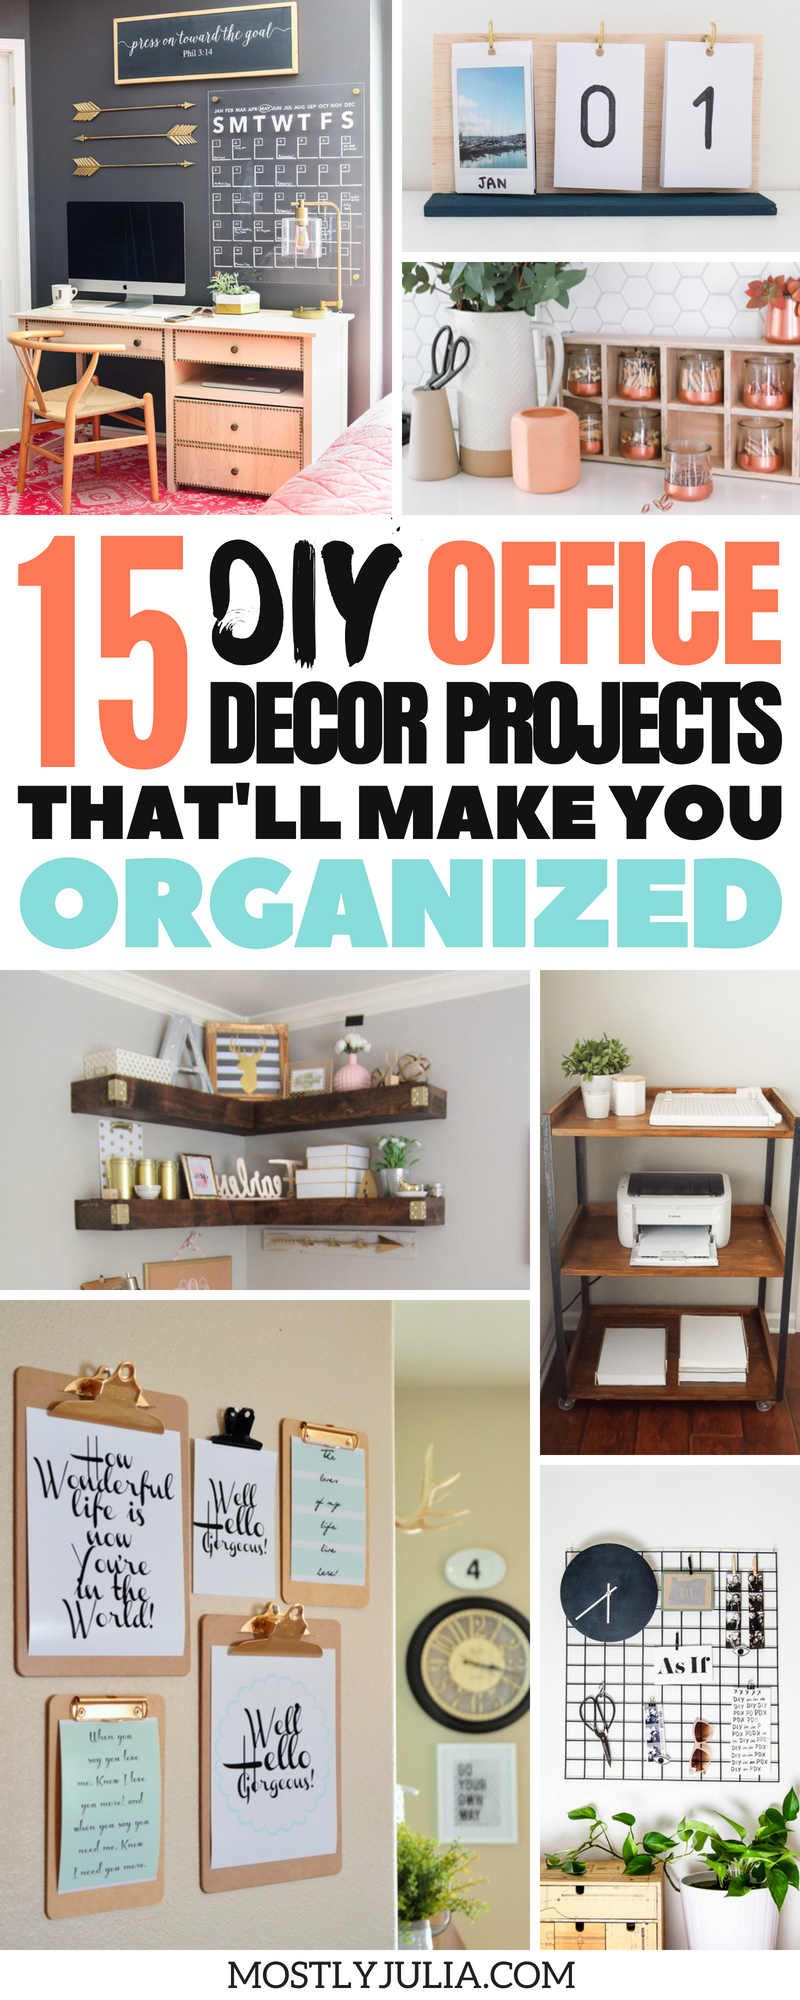 15 Diy Office Decor Ideas To Be More Organized Diy Office Decor Desk Organization Diy Diy Office Organization